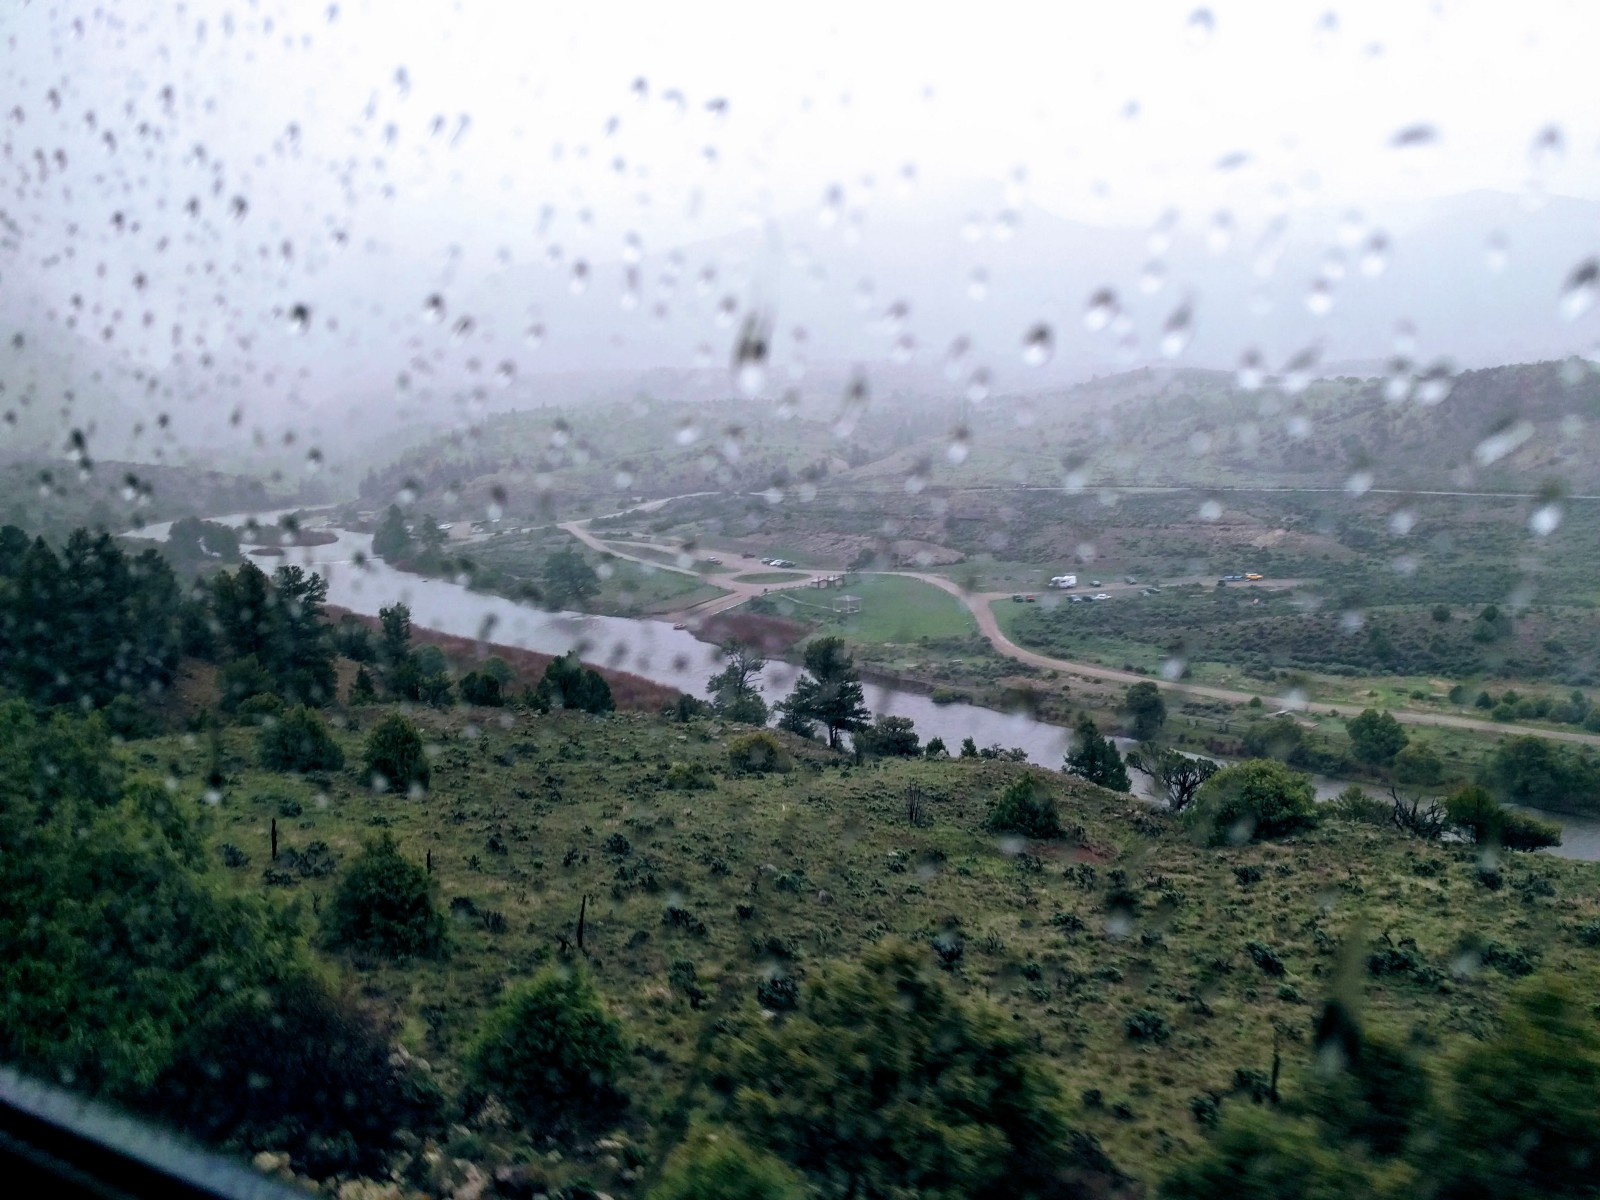 What did I say about trains and rains? — Kremmling, Colorado.